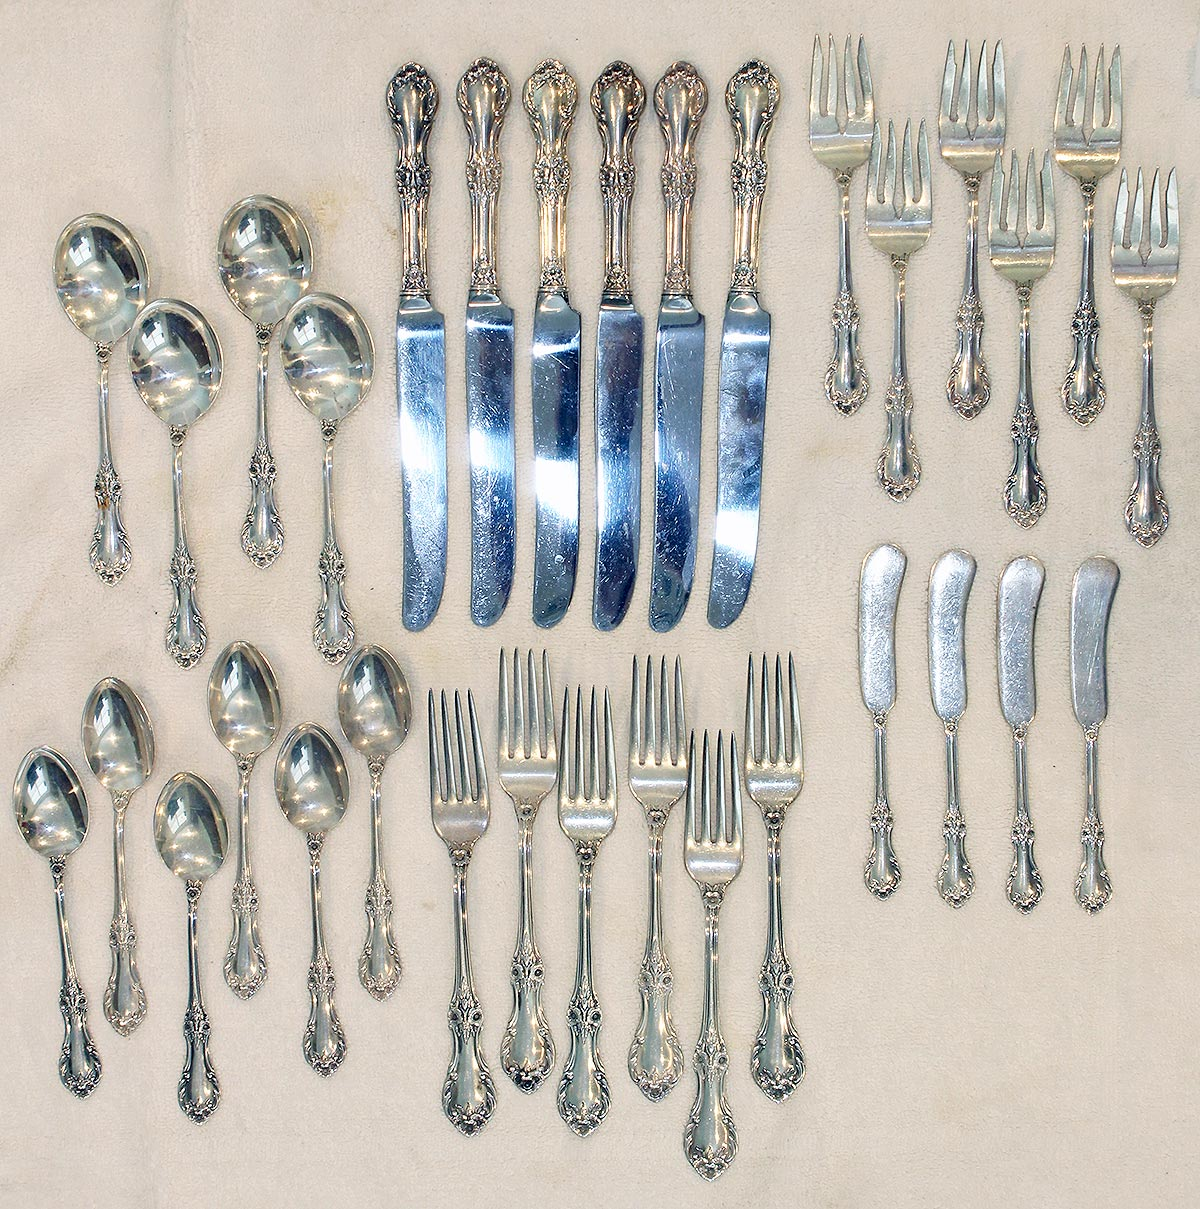 1948 STERLING SILVER INTERNATIONAL SILVER 32 PCS SET WILD ROSE PATTERN OFFERED BY ANTIQUE DIGGER